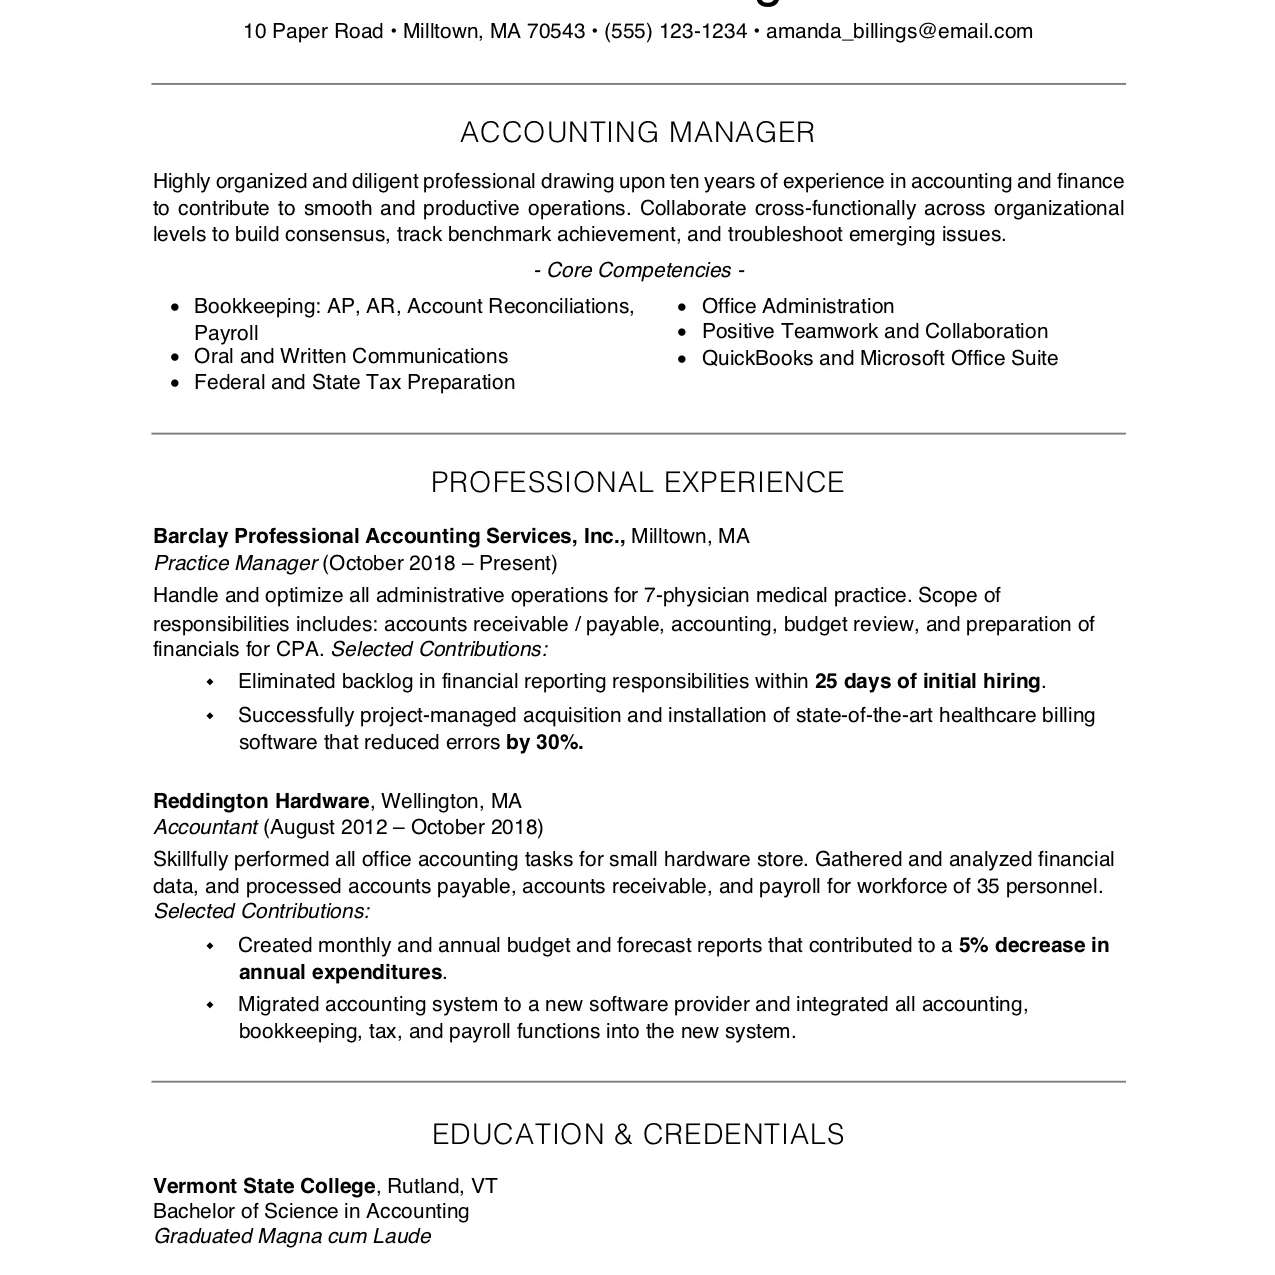 free professional resume examples and writing tips to email 2063596res1 engineering Resume Free Resume To Email